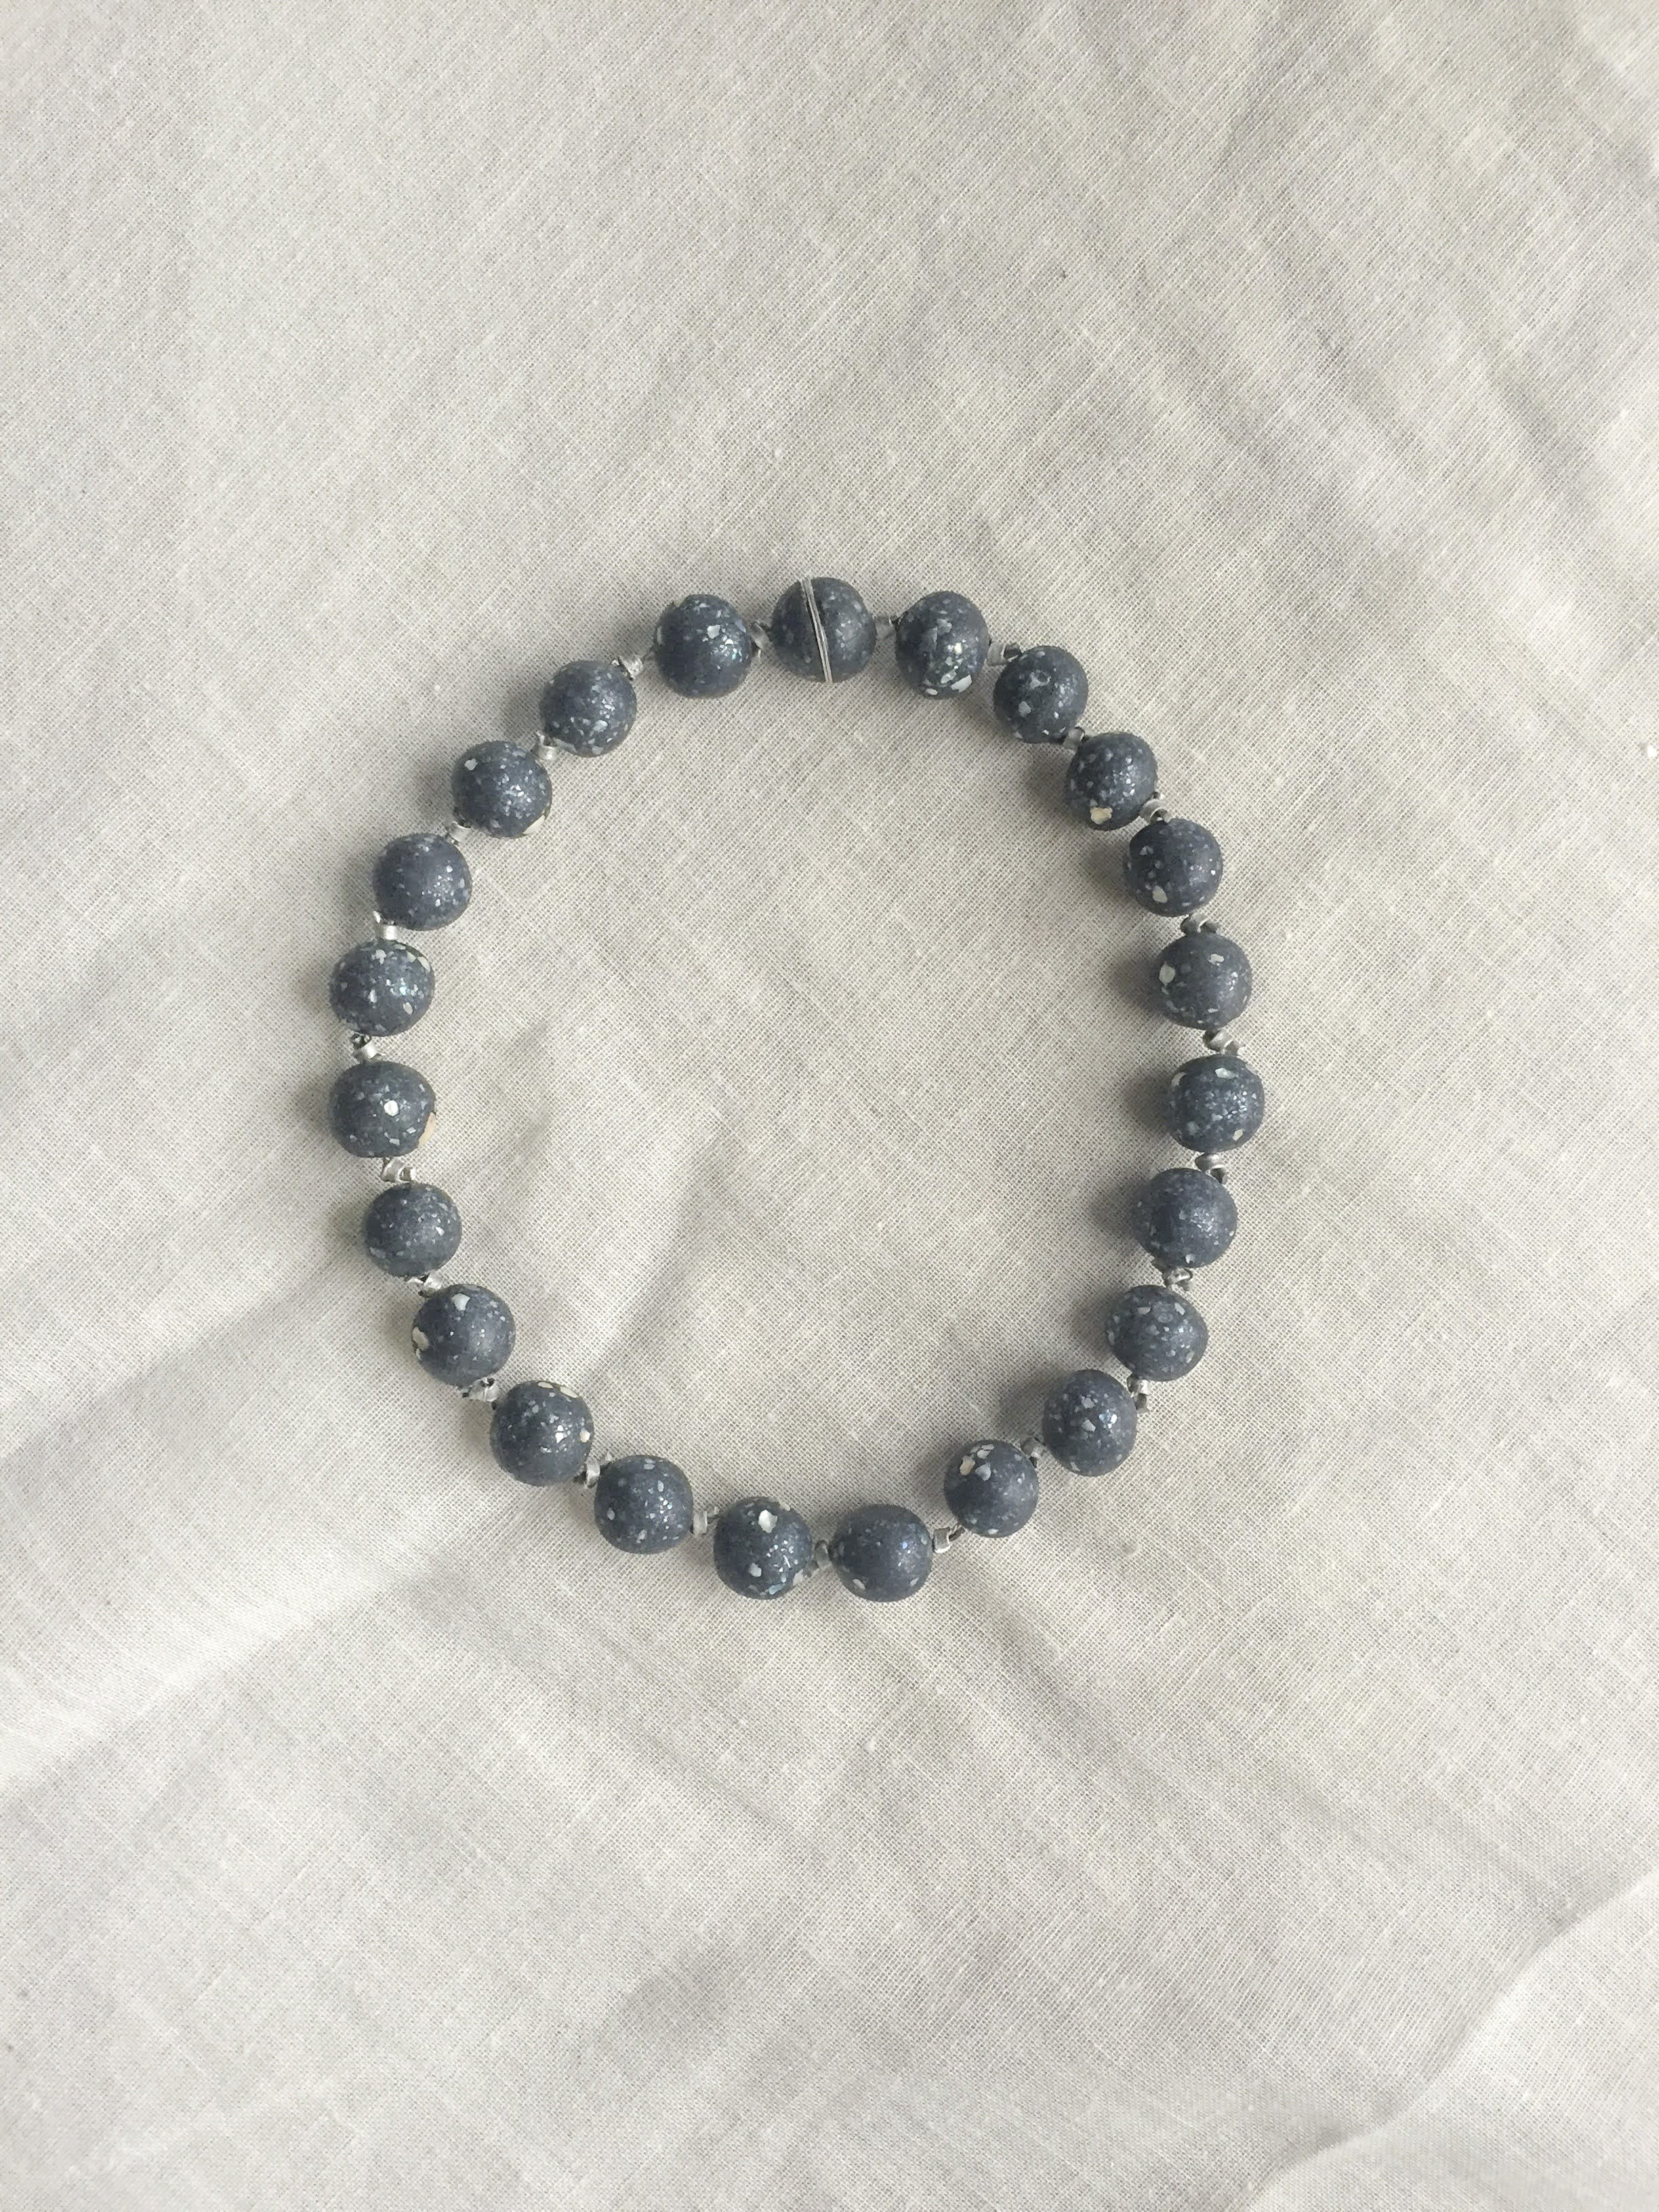 Black bead necklace - Tying the cosmos together[read more: encapsulating the universe in a bead]